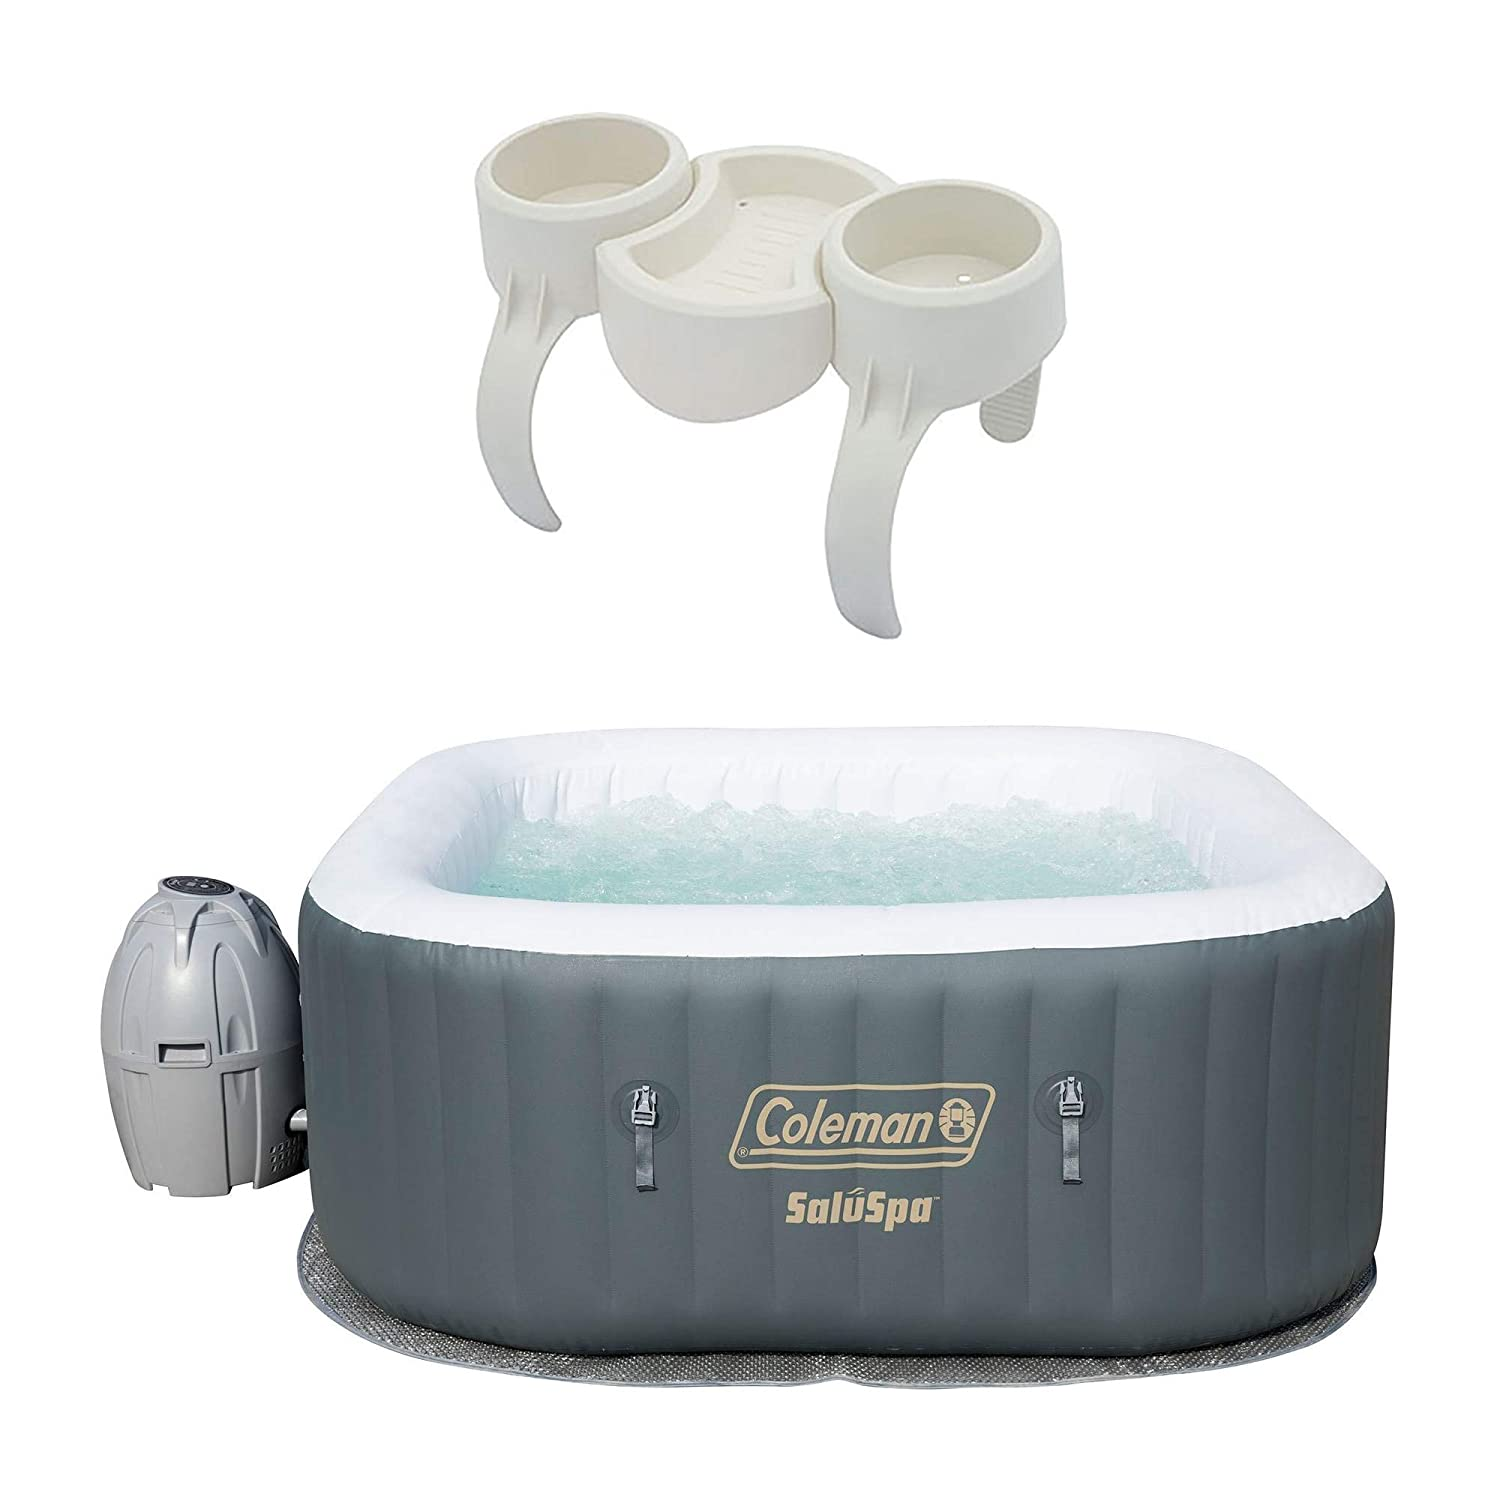 Coleman SaluSpa Hot Tub with Drink Holder